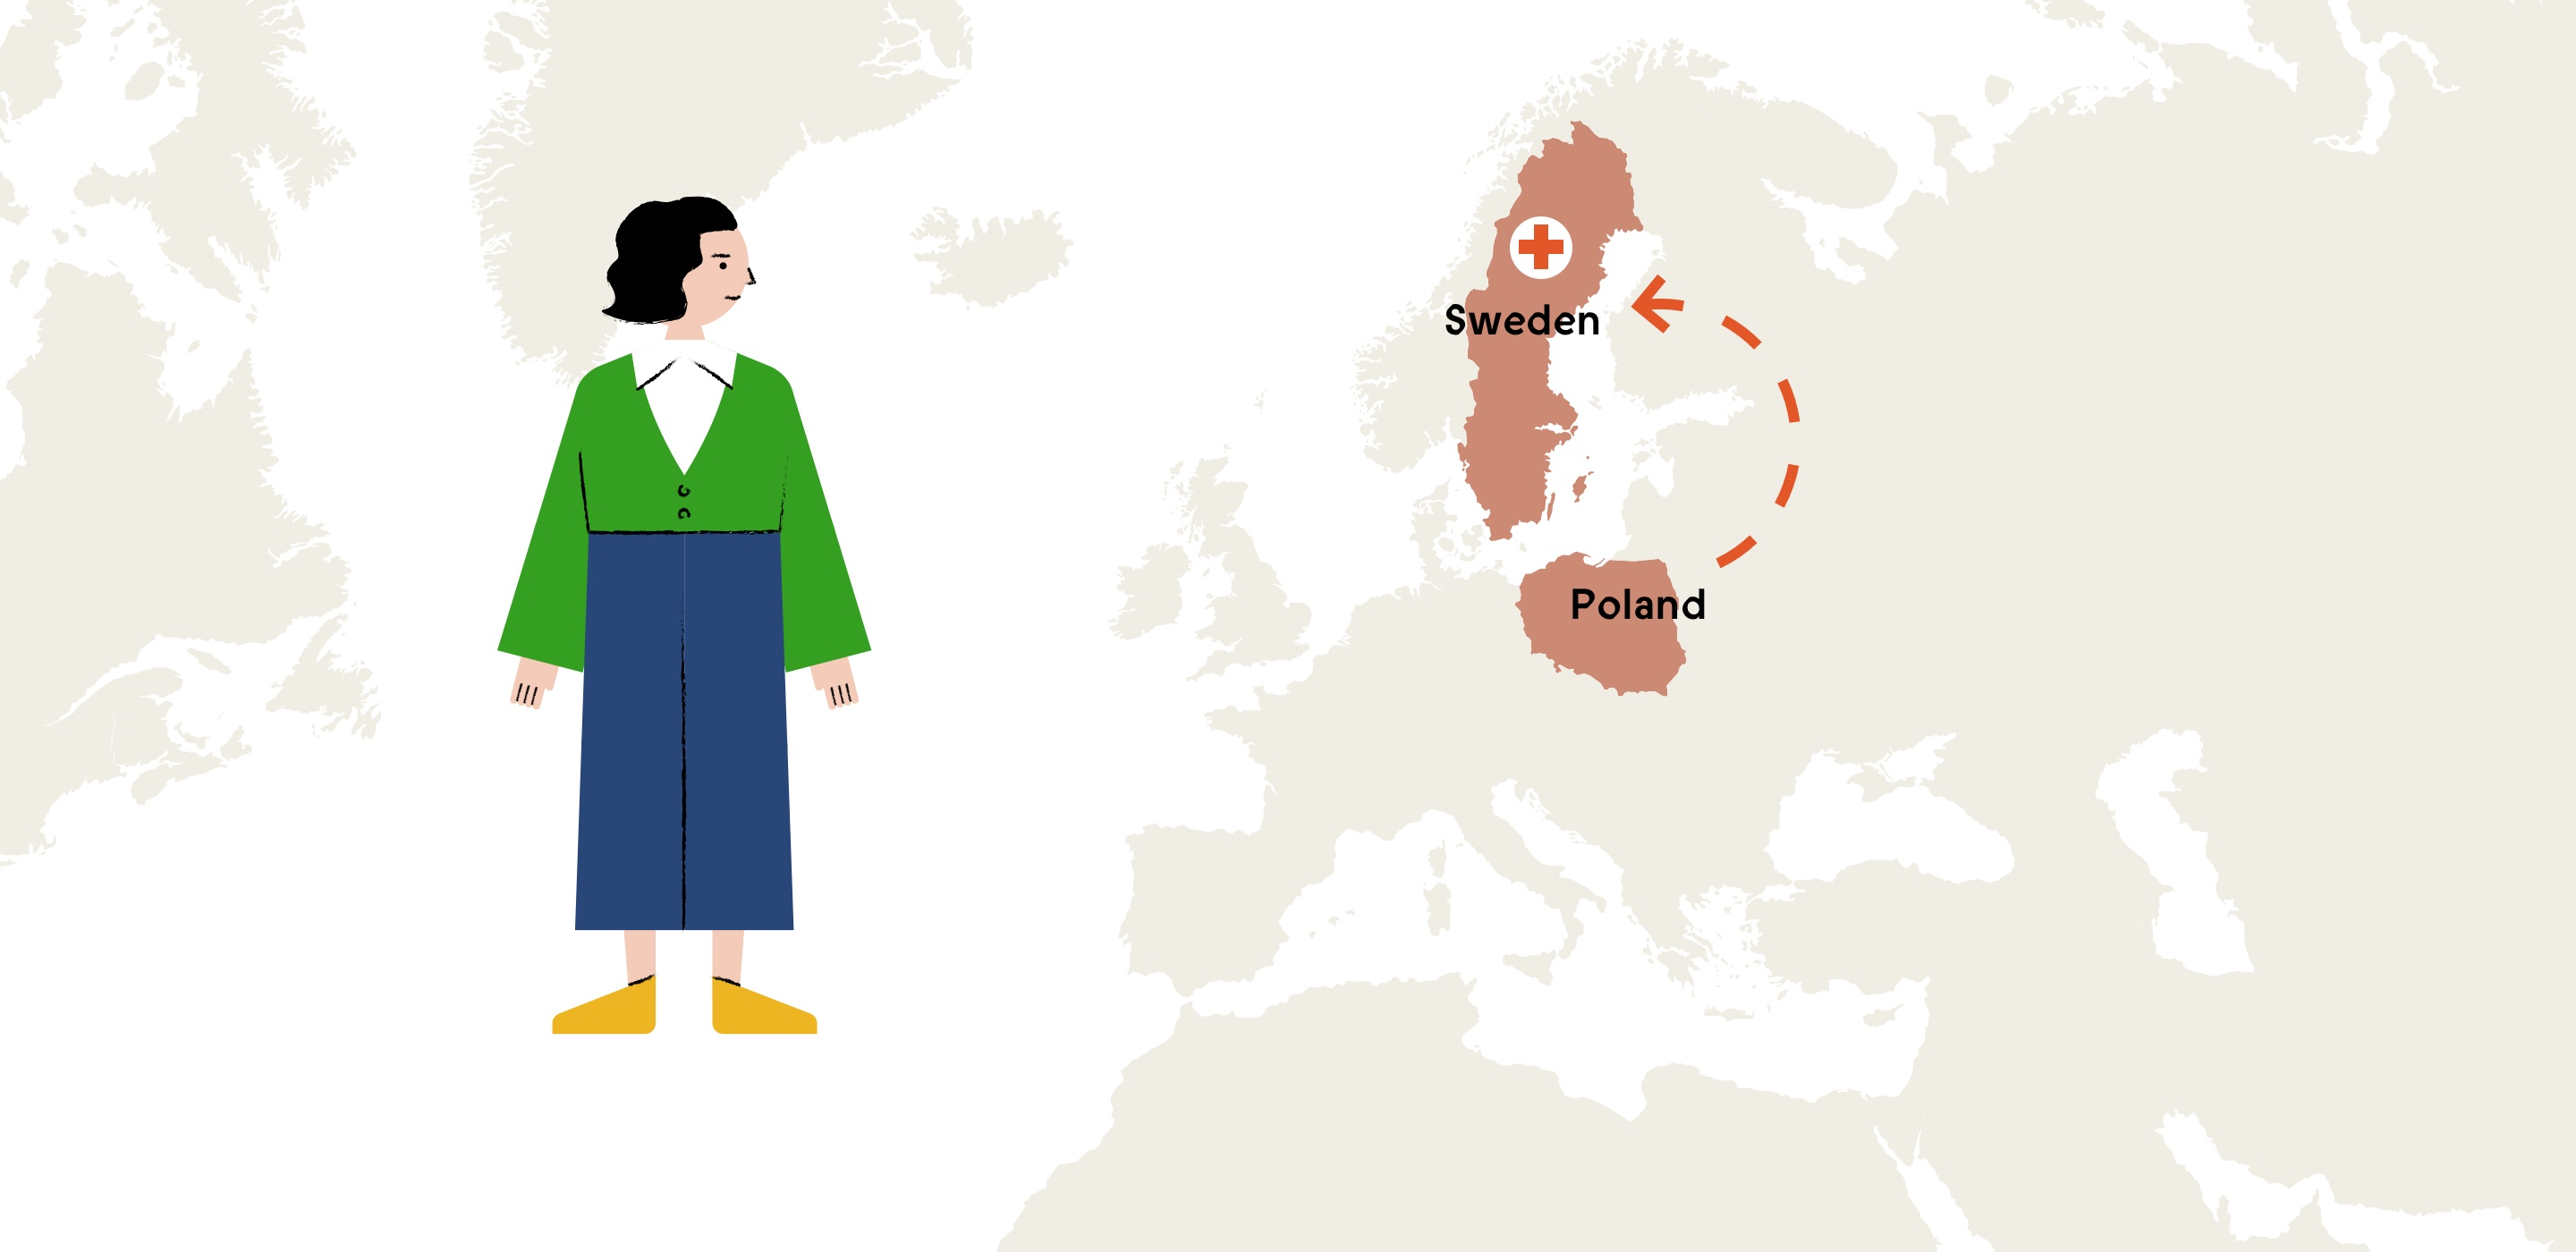 Illustration of Beba and a map highlighting Sweden.